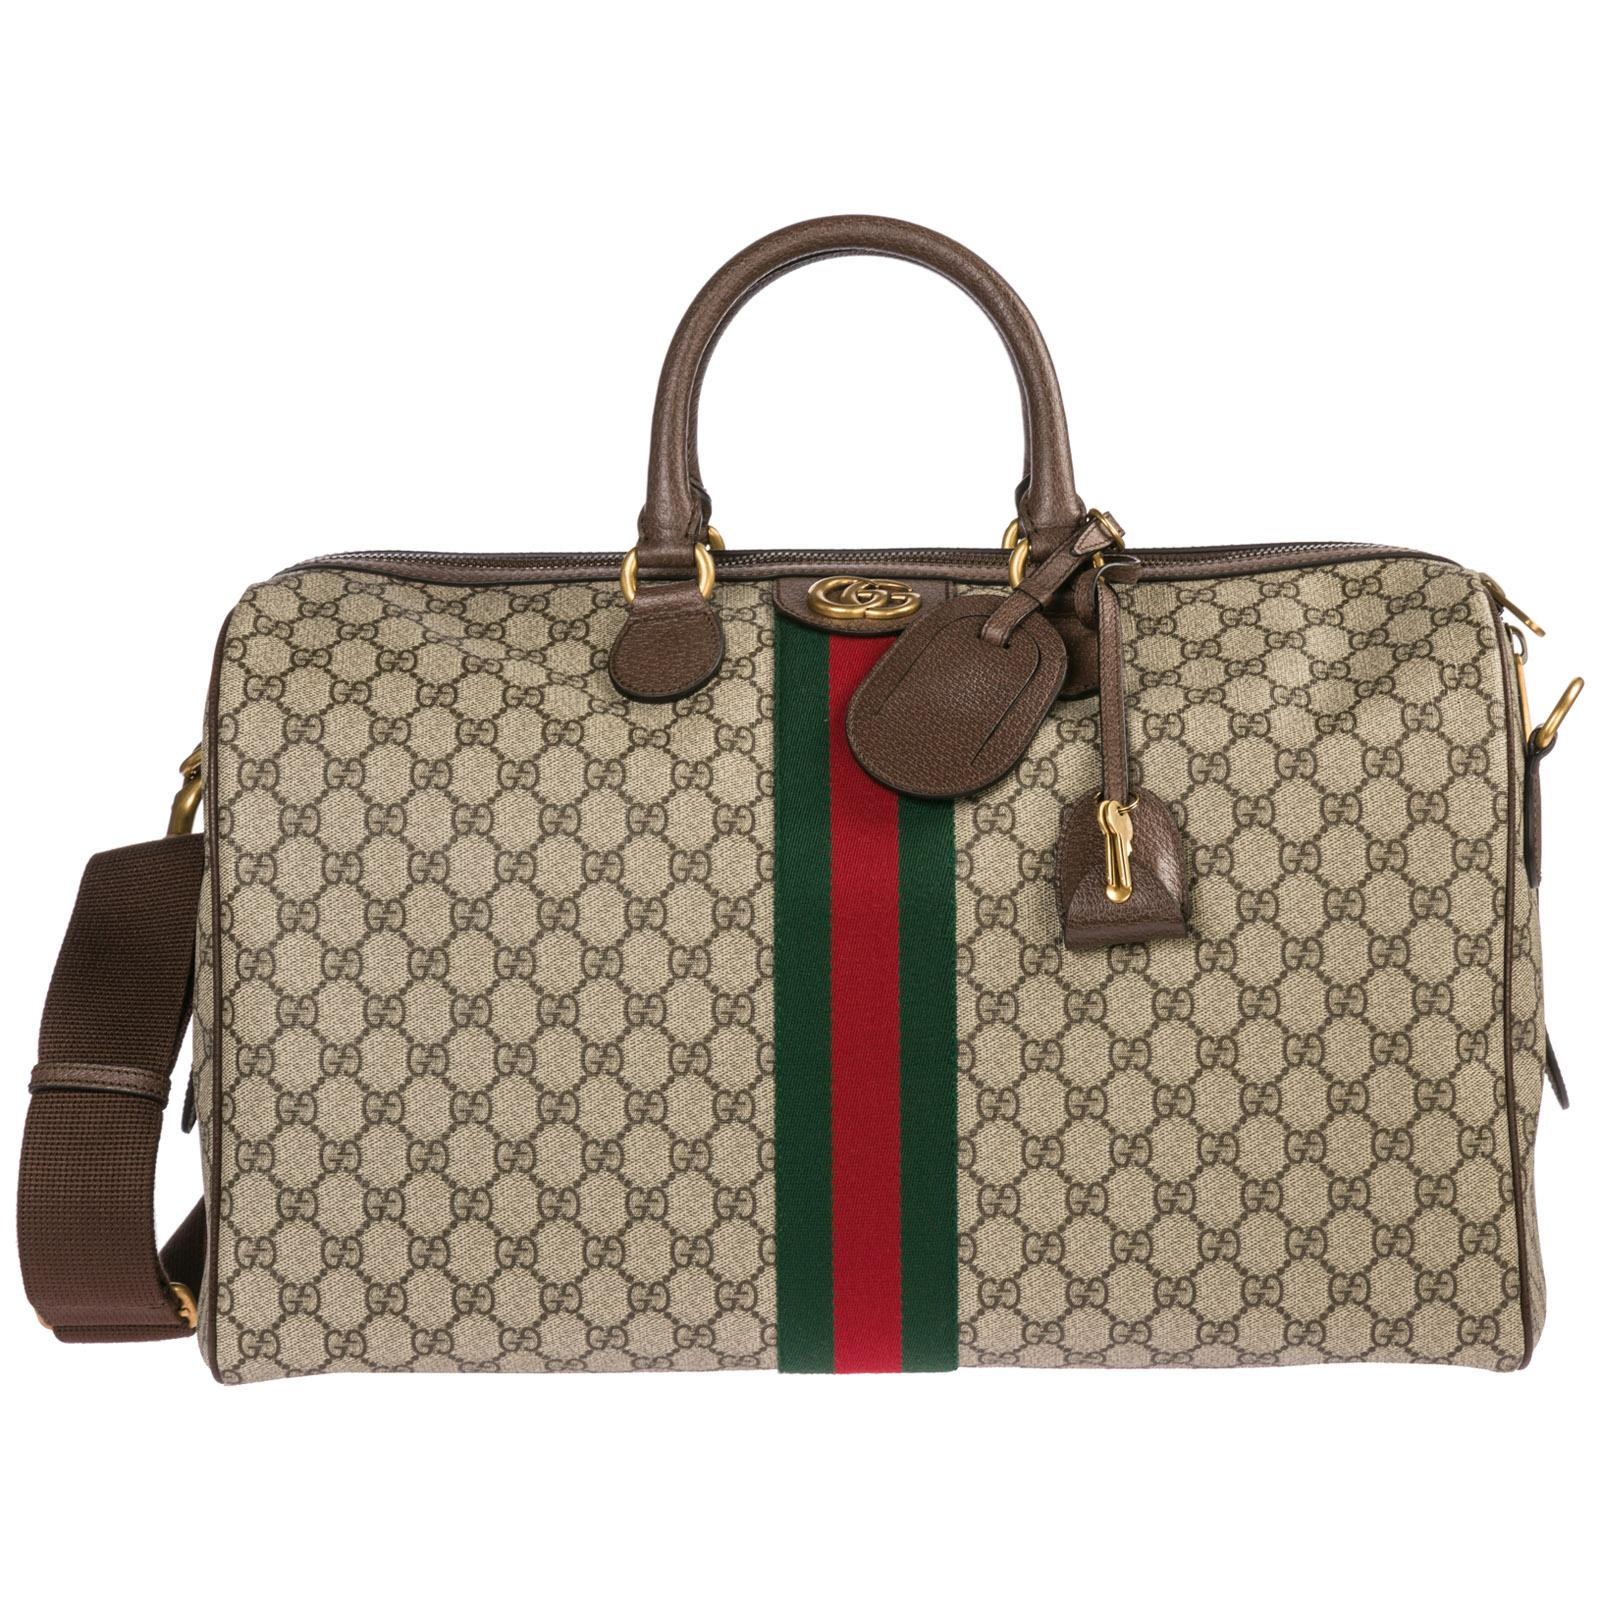 ead42e5f80 Gucci. Men's Natural Genuine Leather Travel Duffle Weekend Shoulder Bag  Ophidia